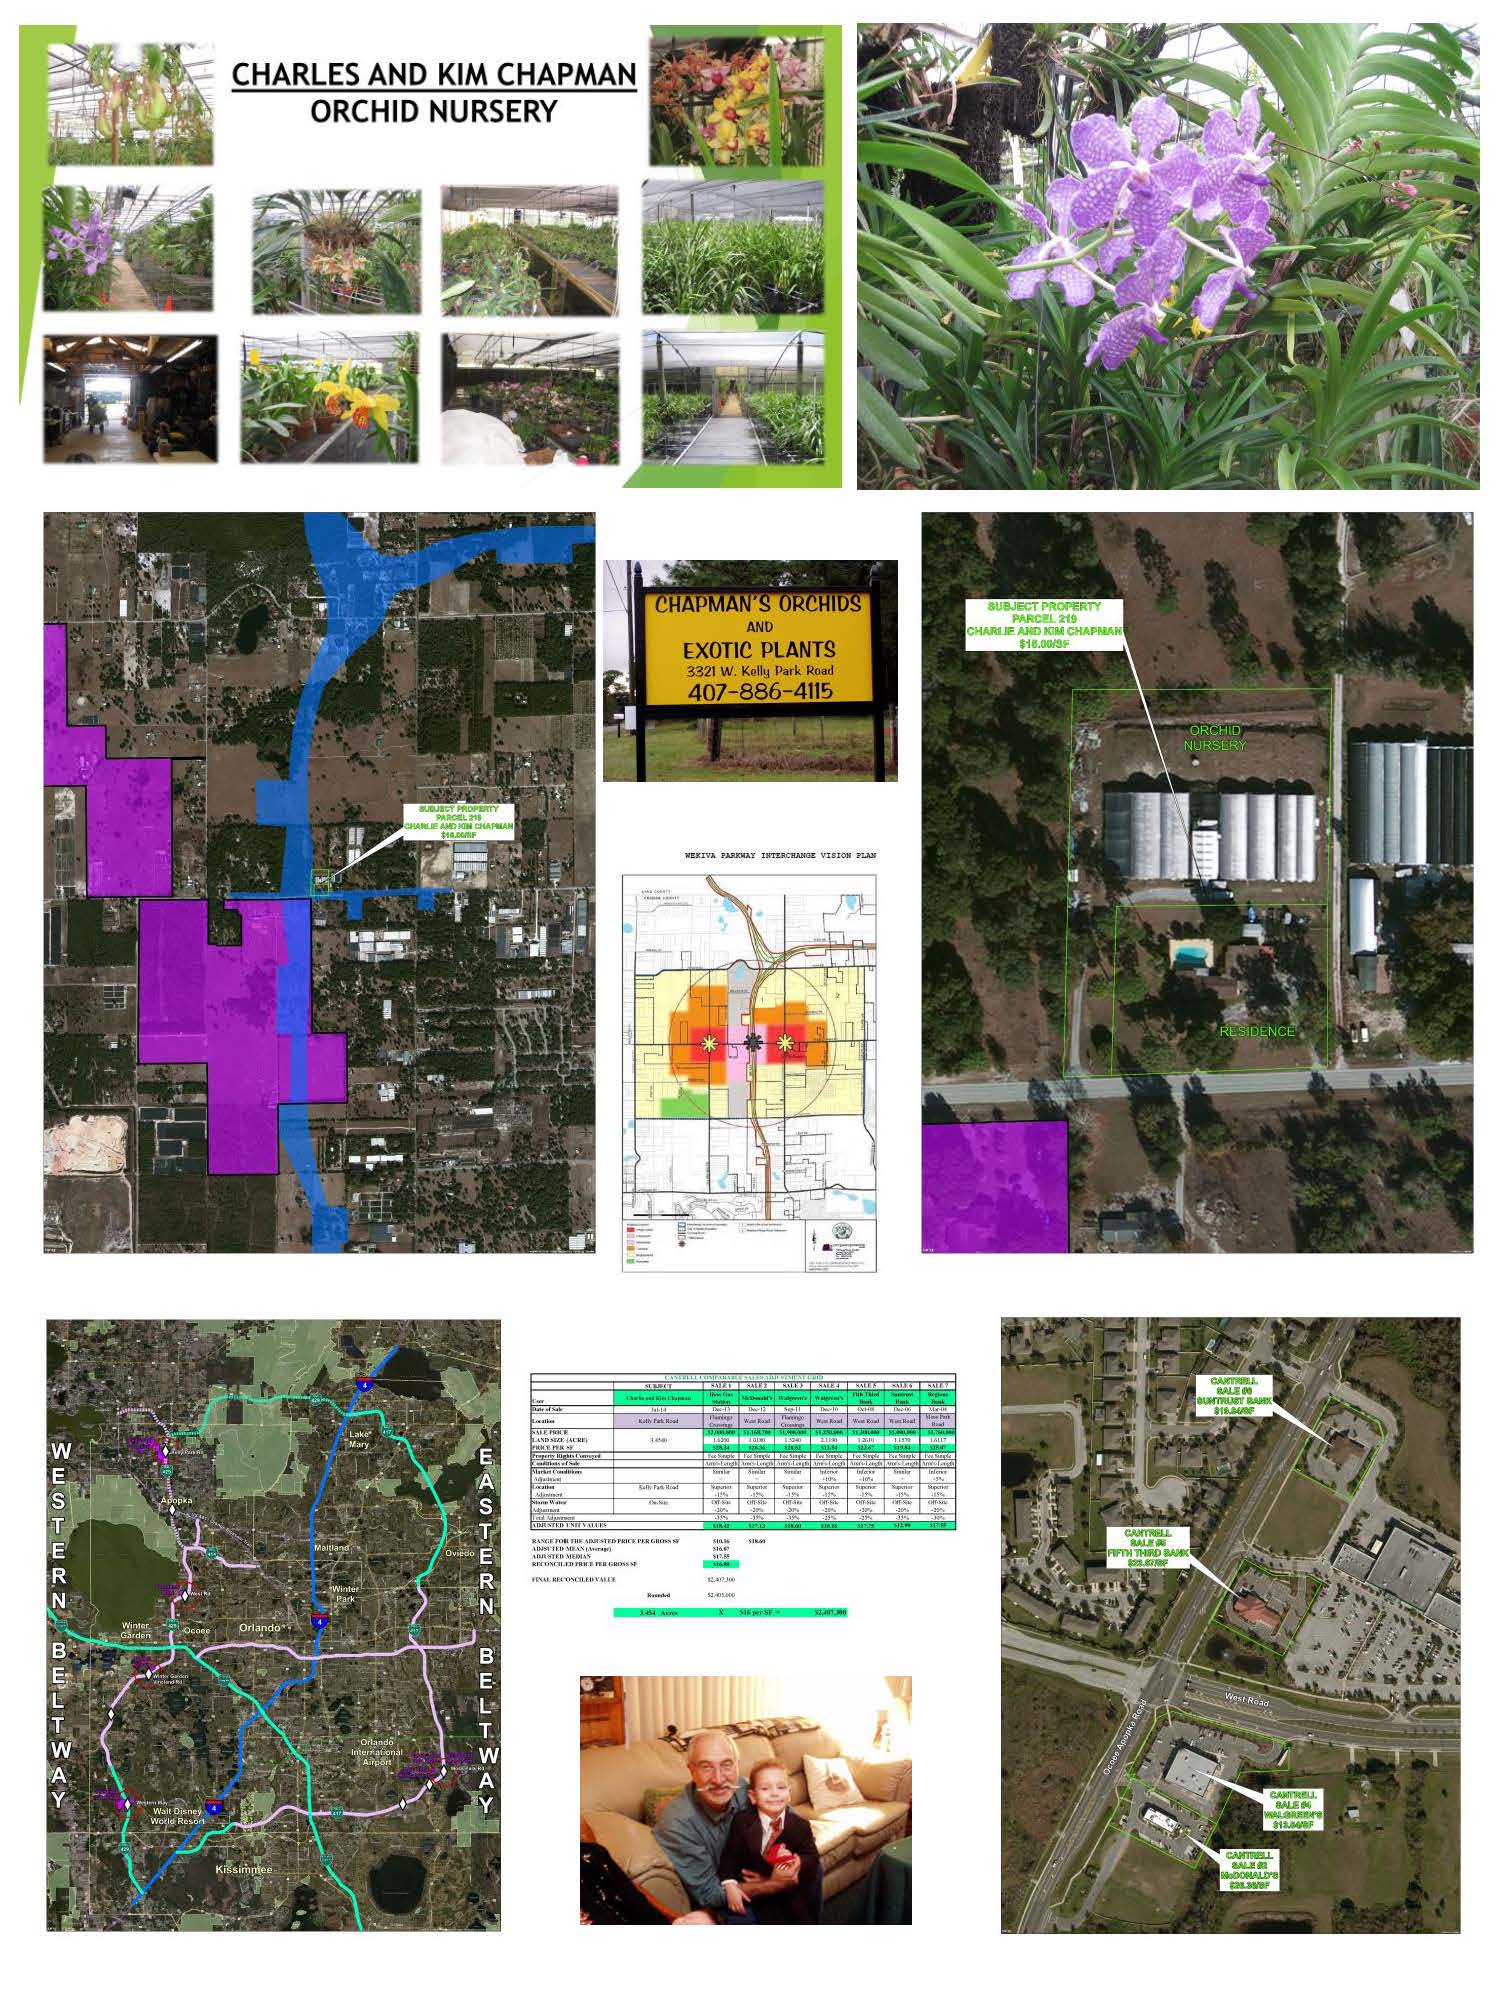 CFX Wekiva Parkway: New Interchange Taking Residence and Greenhouses (Orange County, FL)